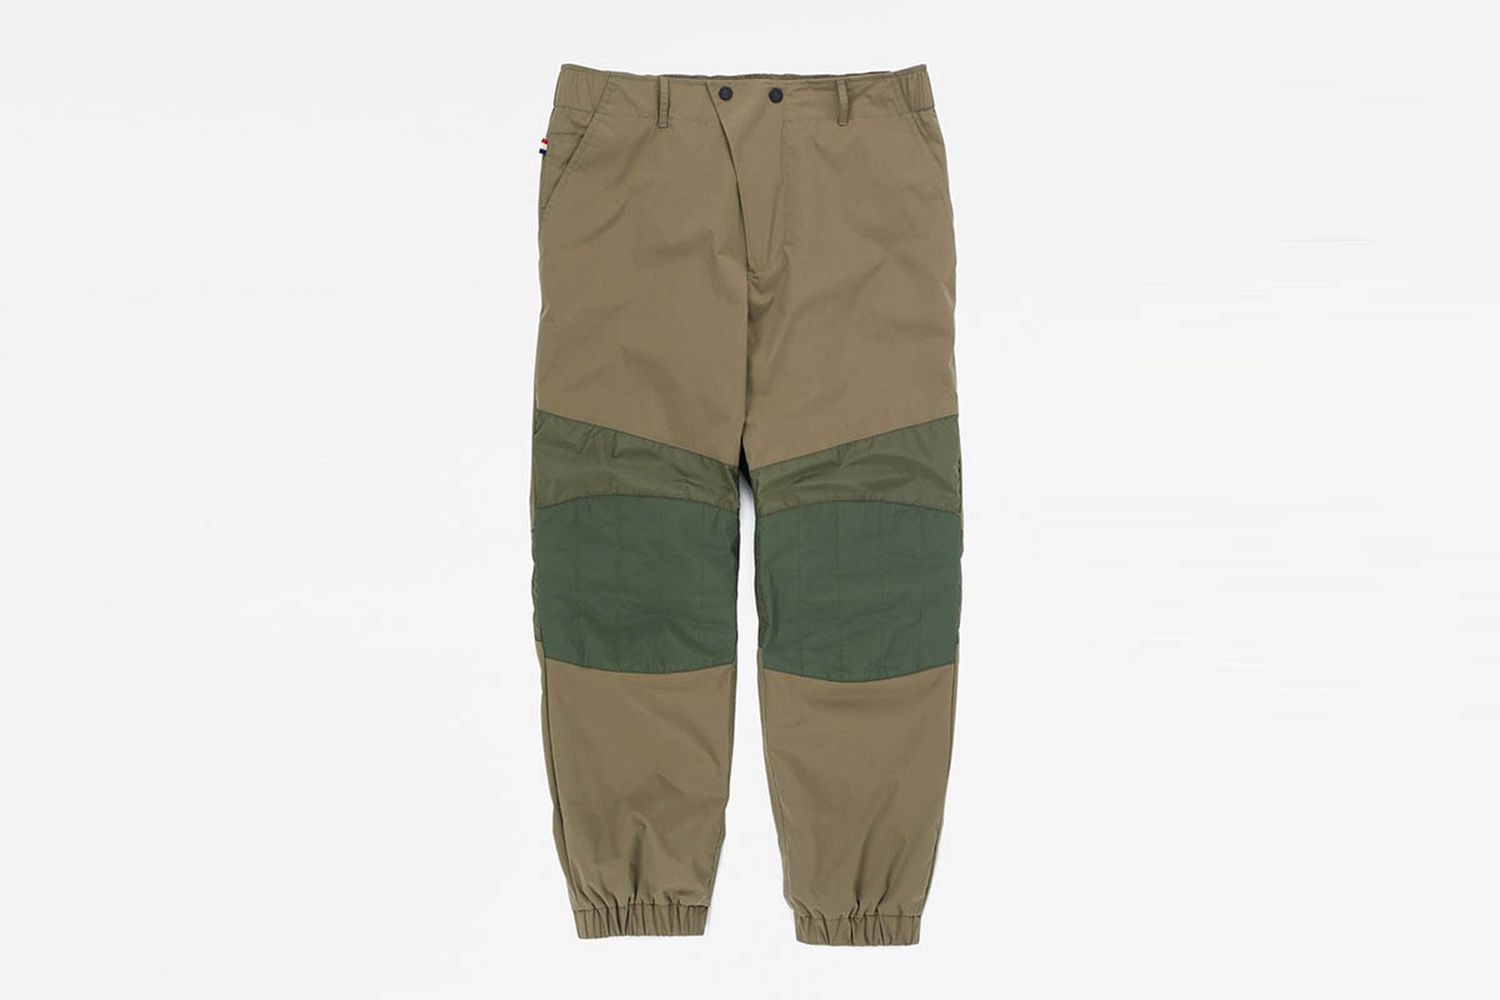 Grenoble Recycled Sports Trousers